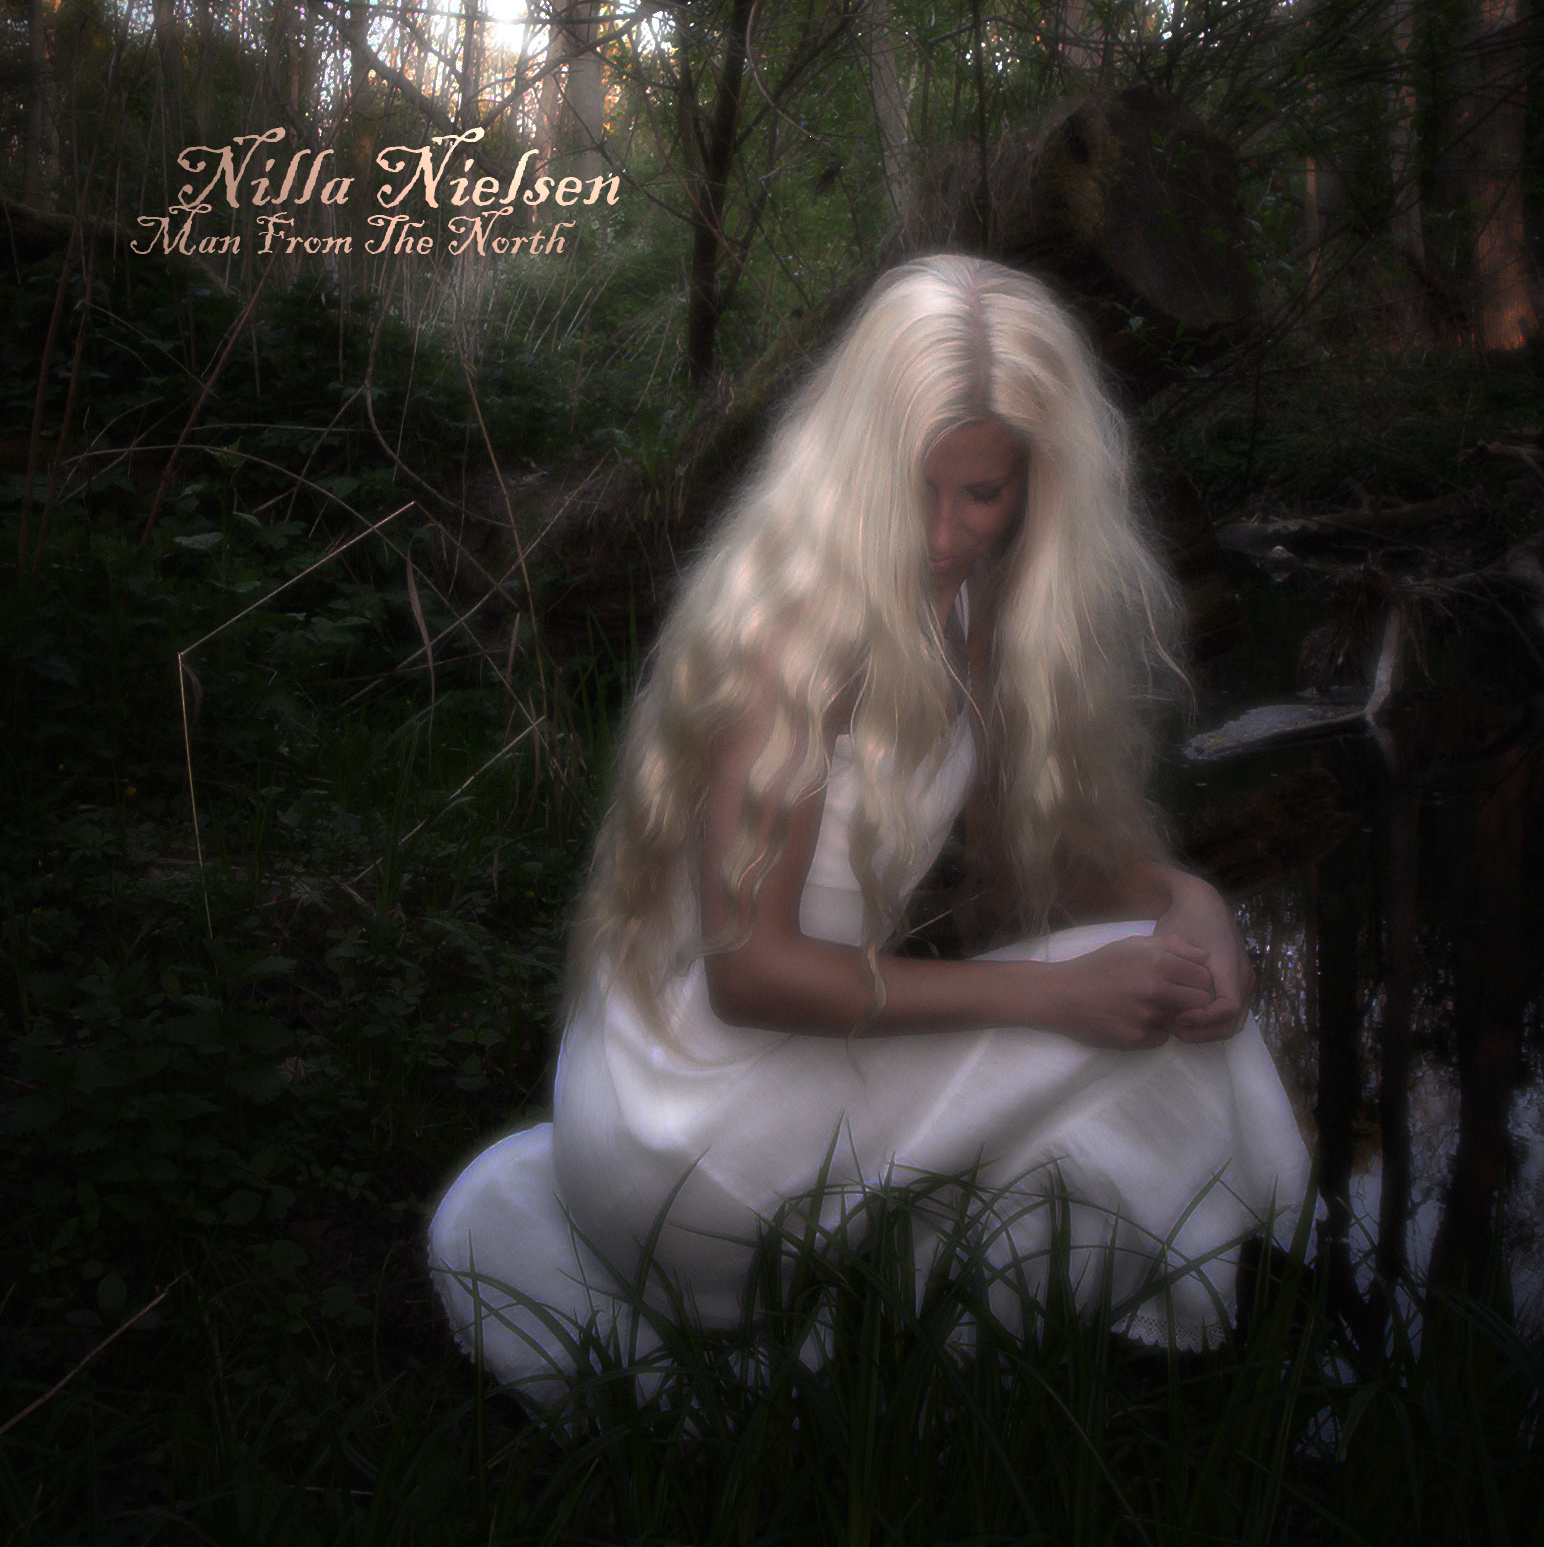 Nilla Nielsen - Man from the North